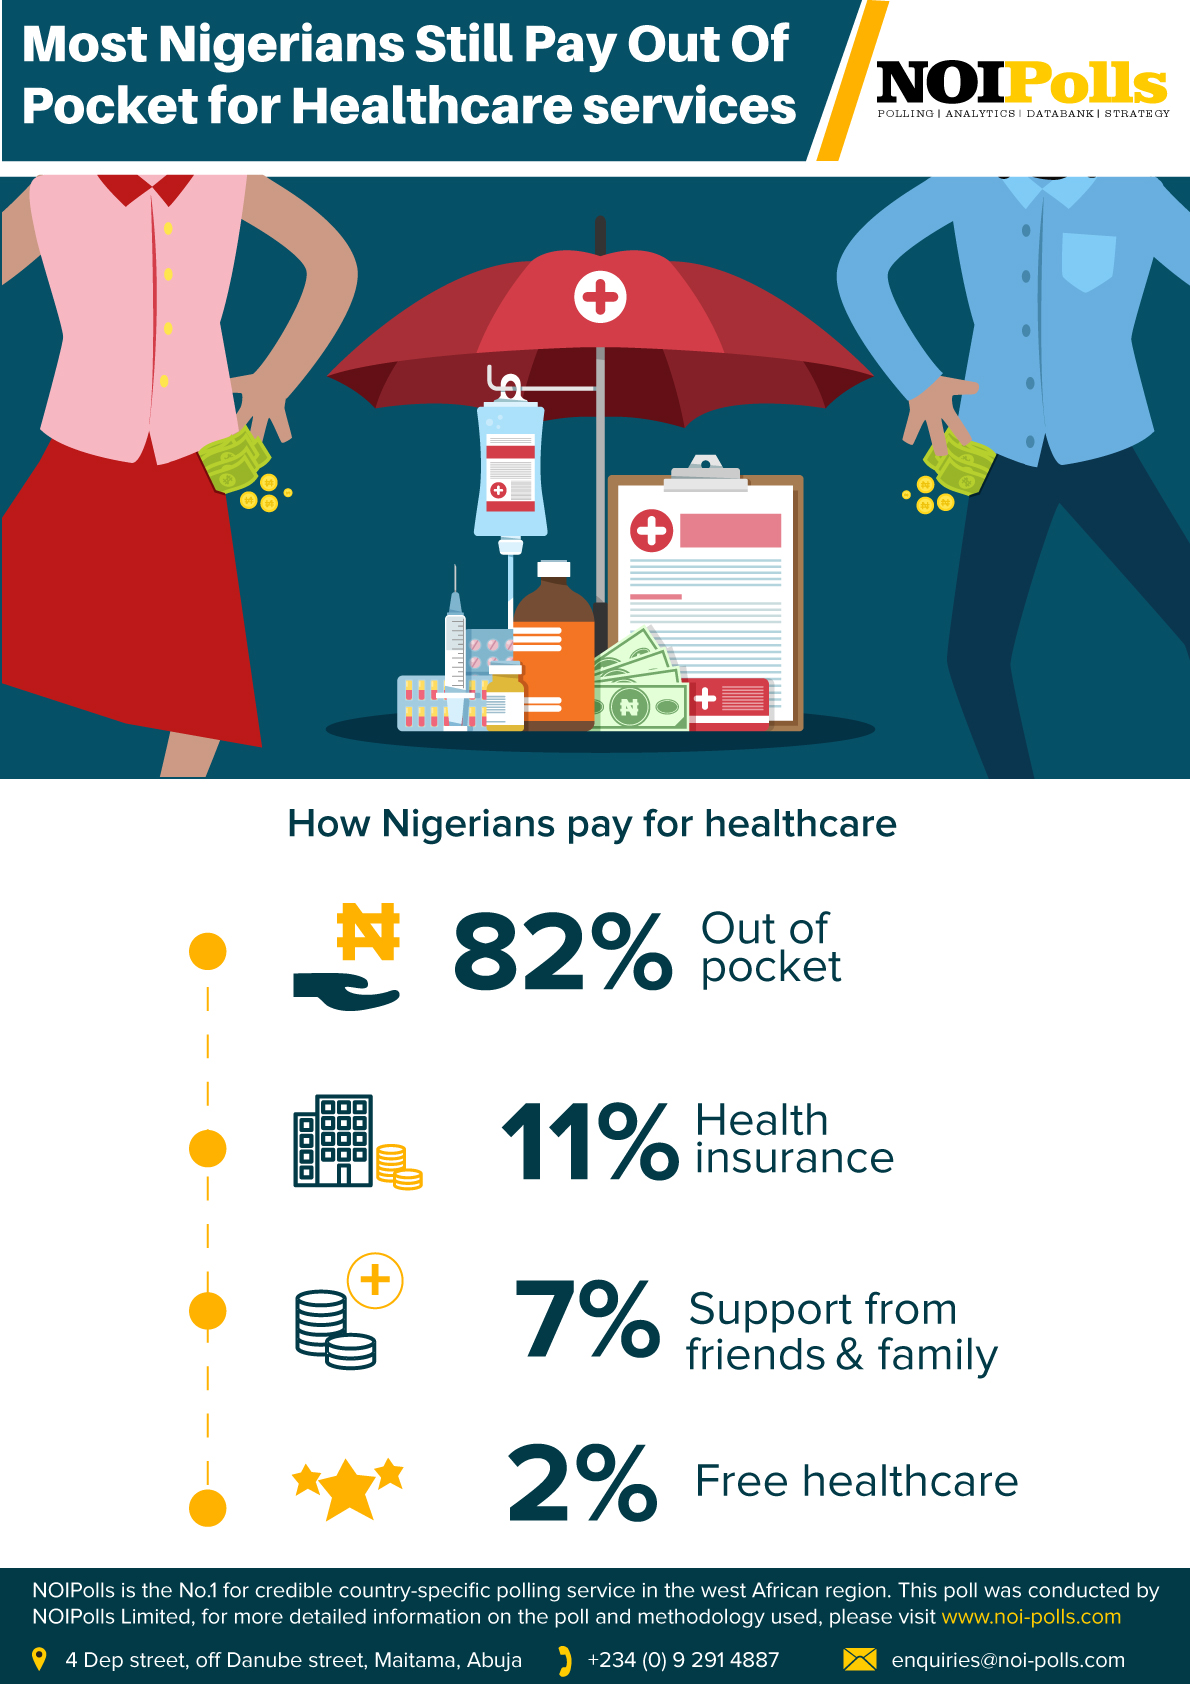 Most Nigerians Still Pay Out-Of-Pocket for Healthcare Services - NOIPolls - Brand Spur